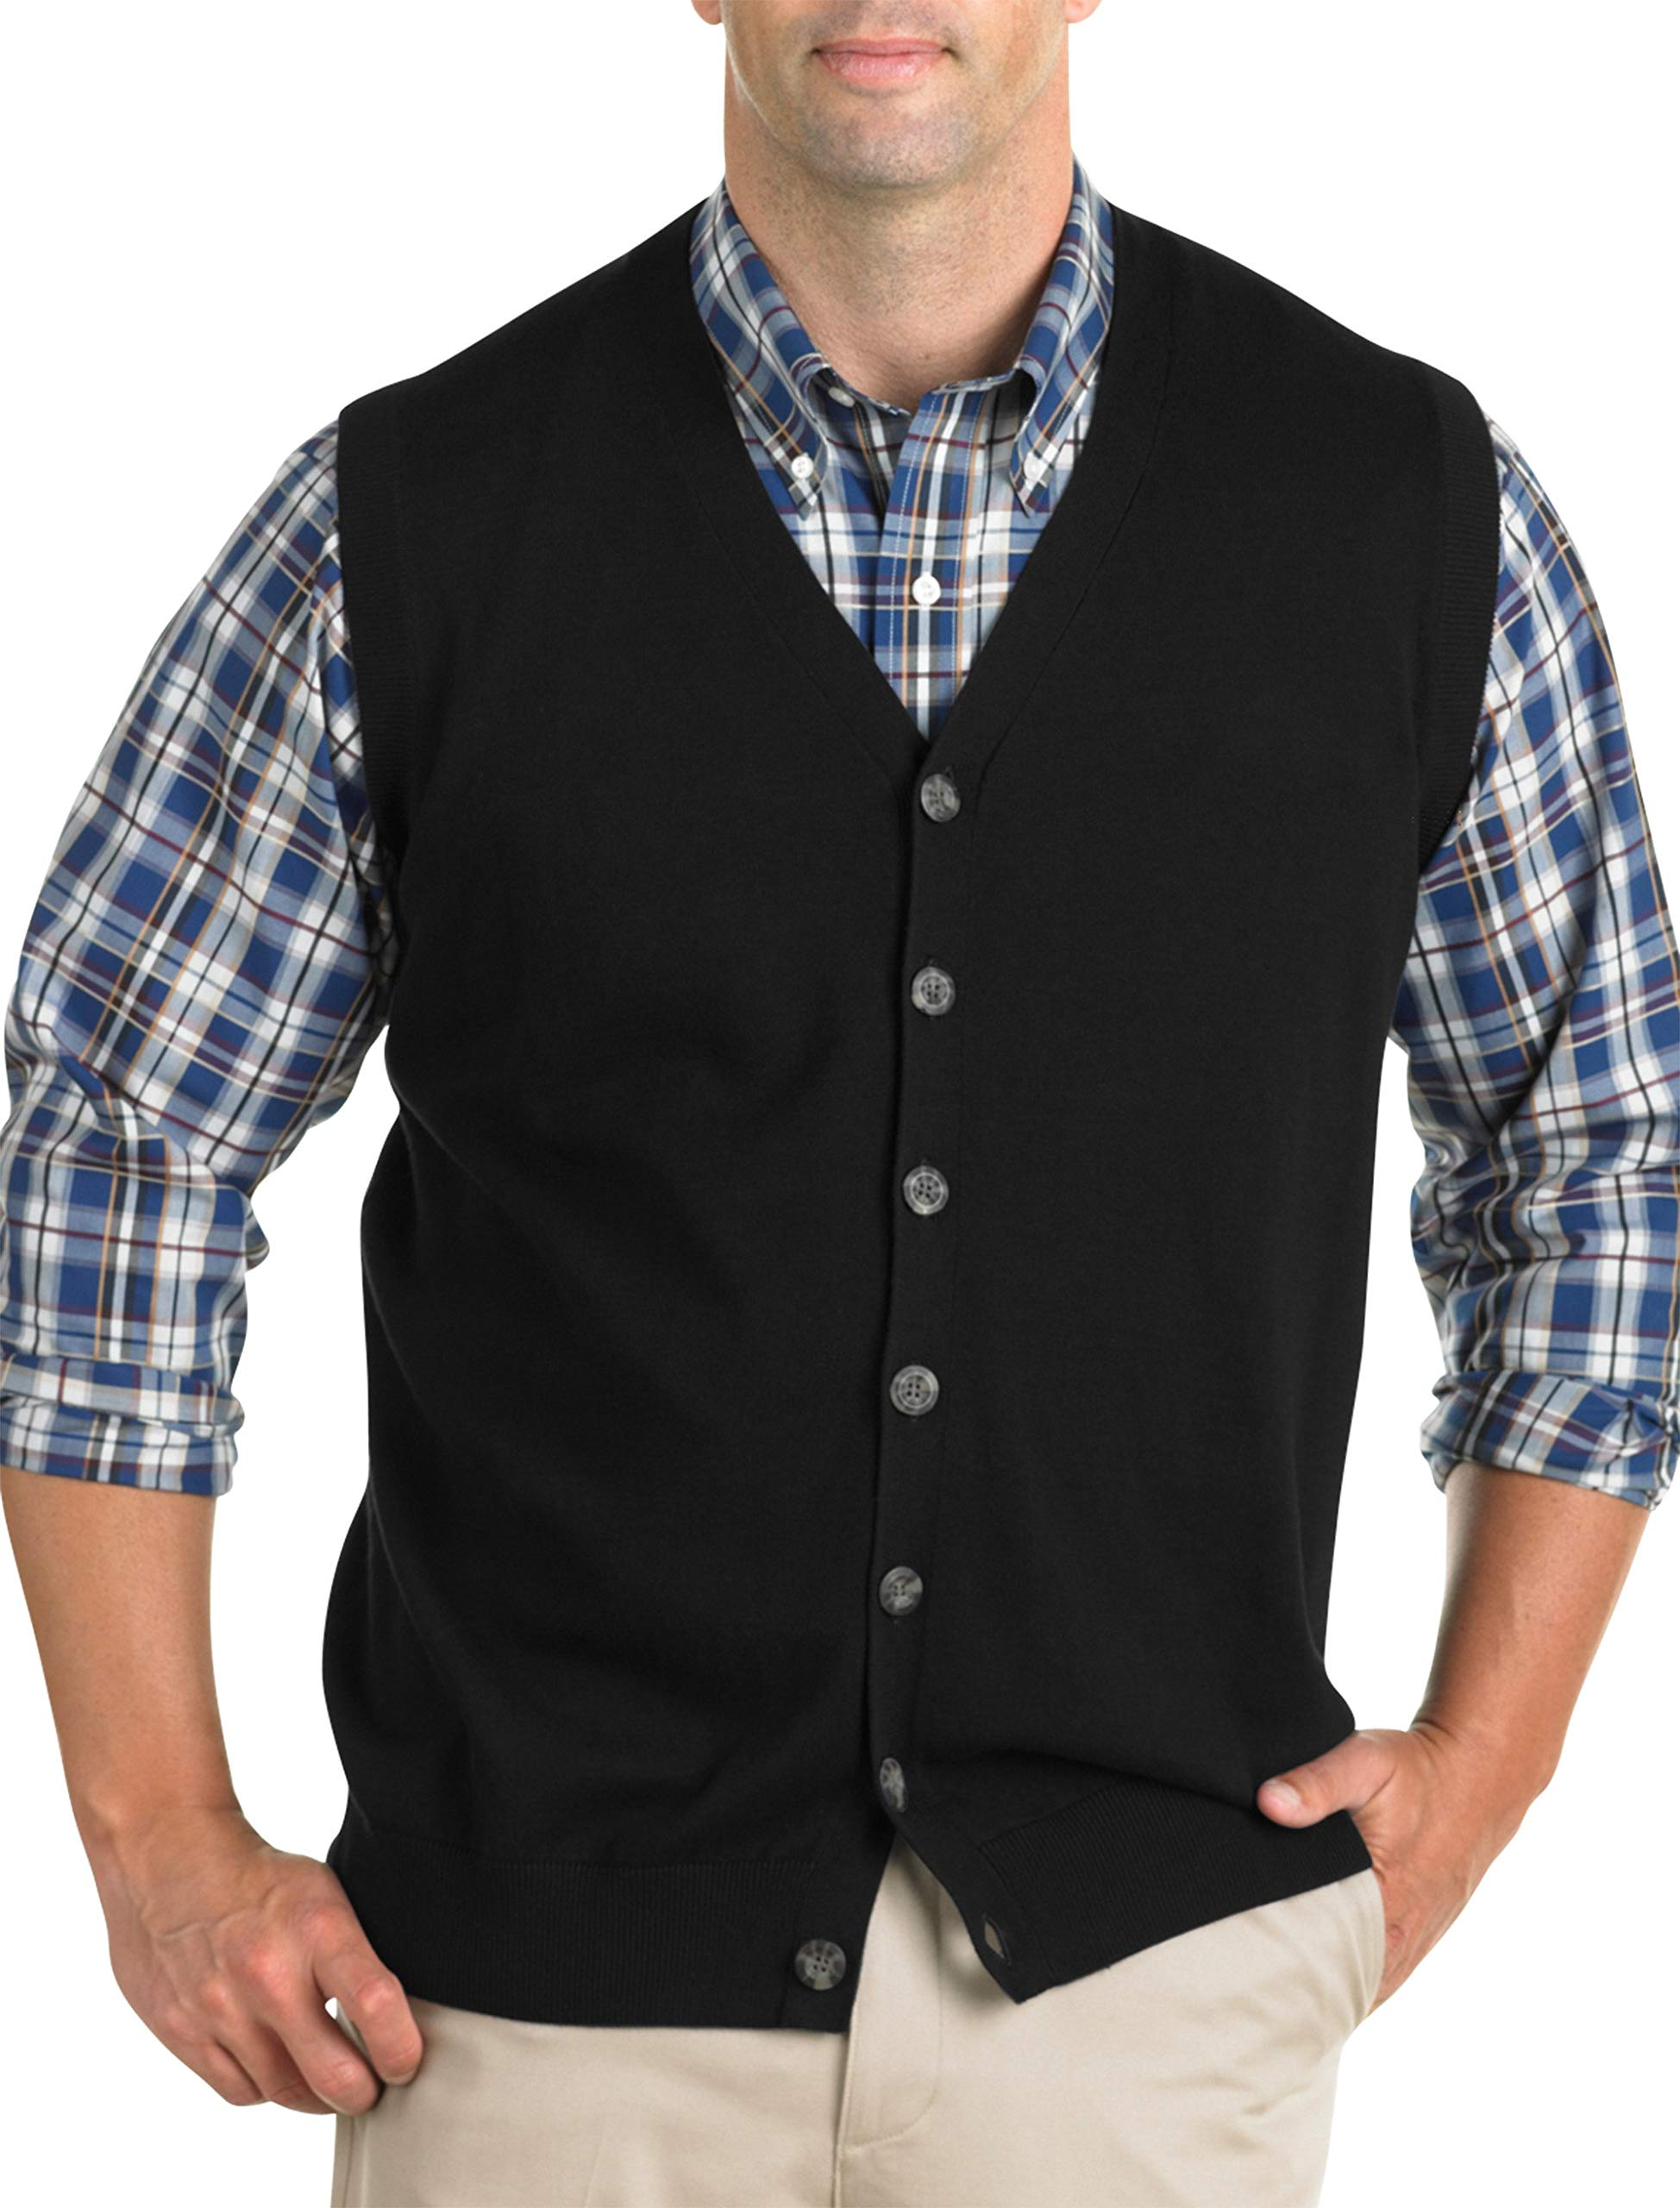 Oak Hill by DXL Big and Tall Button-Front Sweater Vest, Black 2XLT by Oak Hill